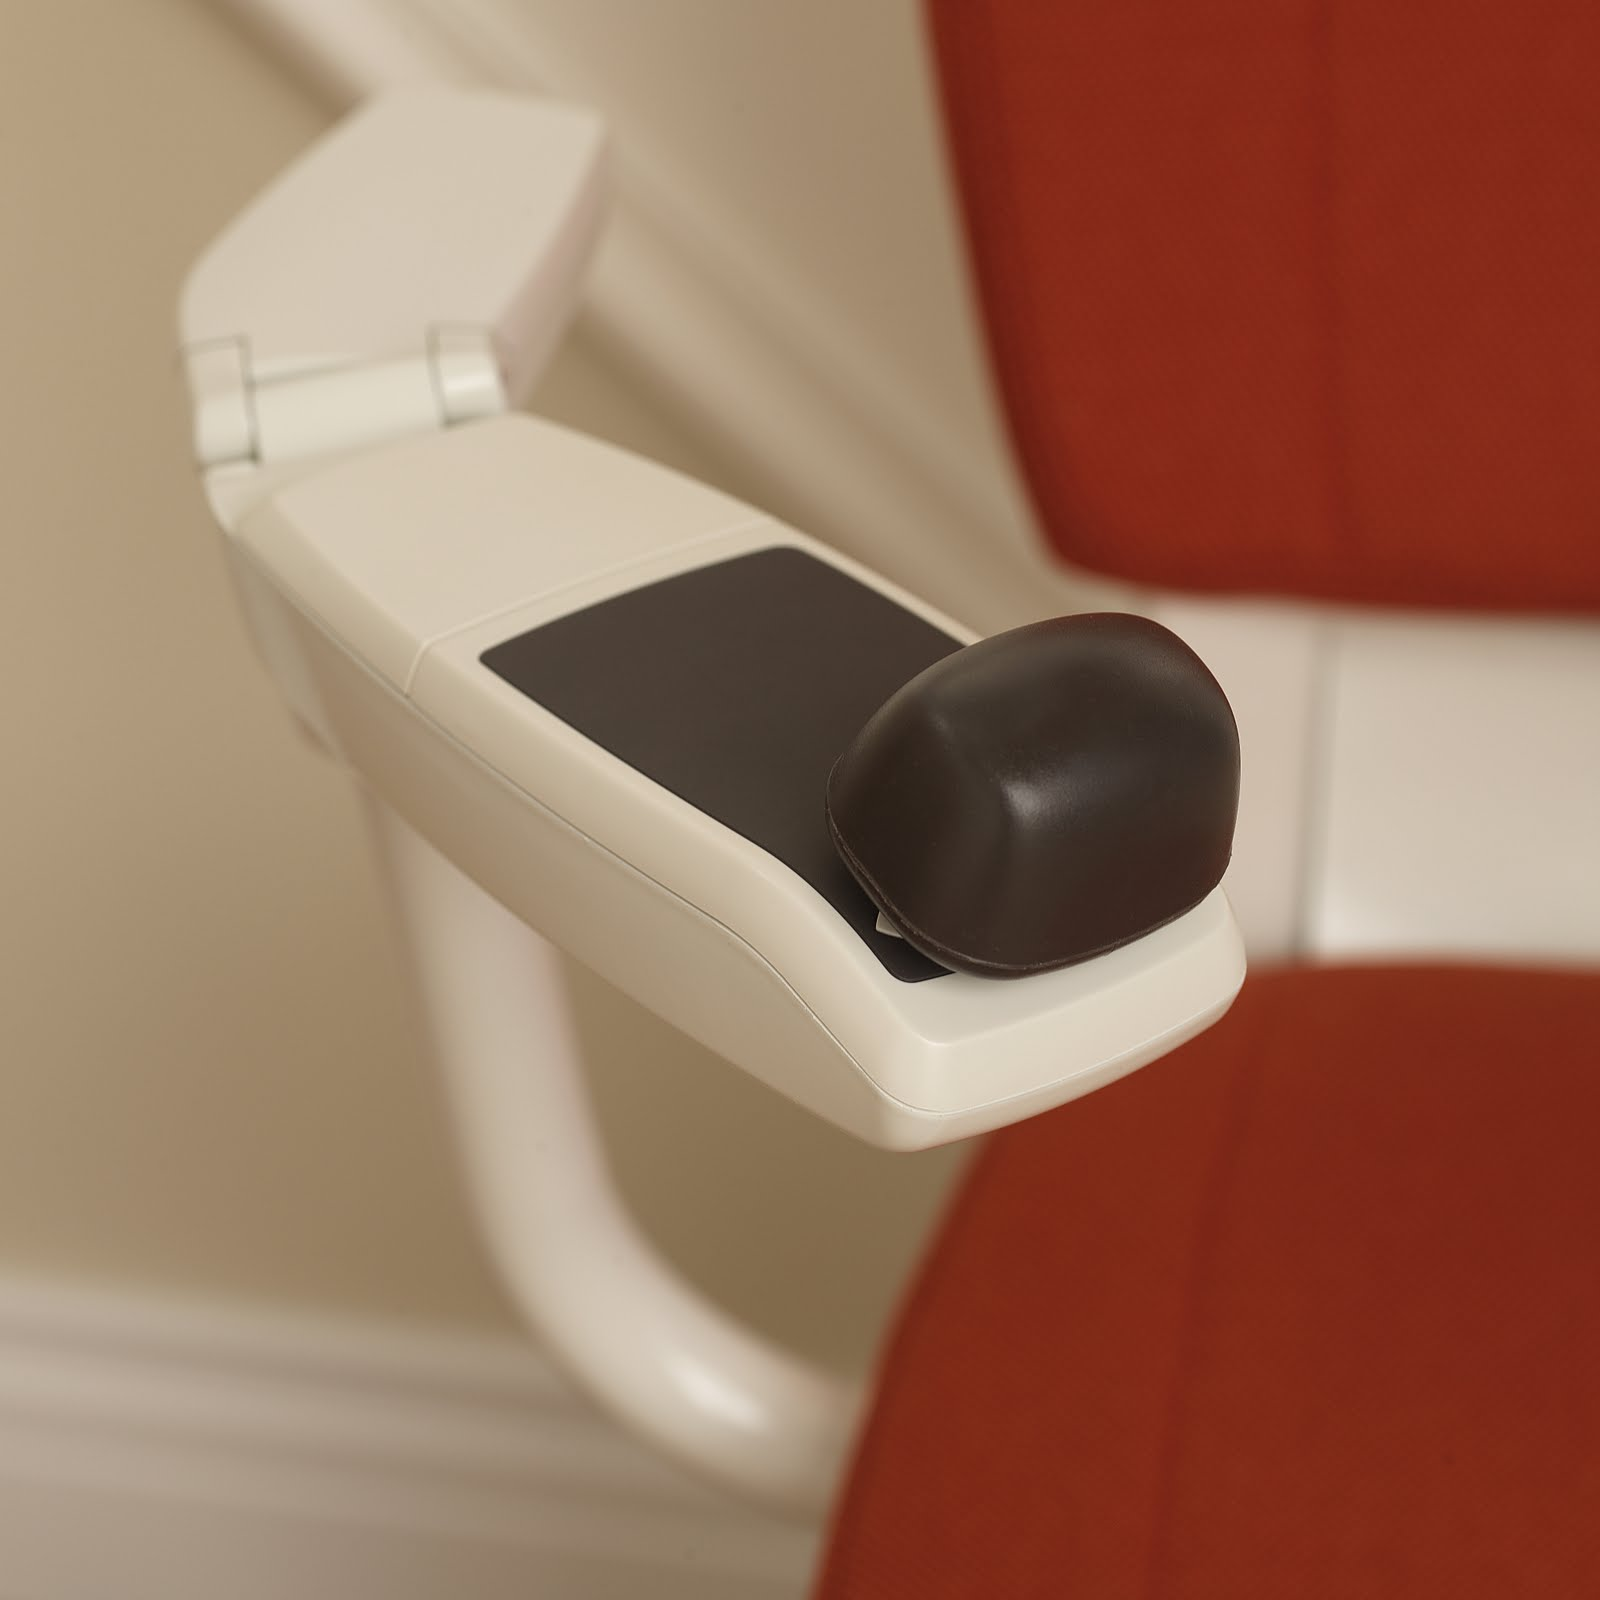 stair lifts flow 2 stairlifts for curved stairs. Black Bedroom Furniture Sets. Home Design Ideas